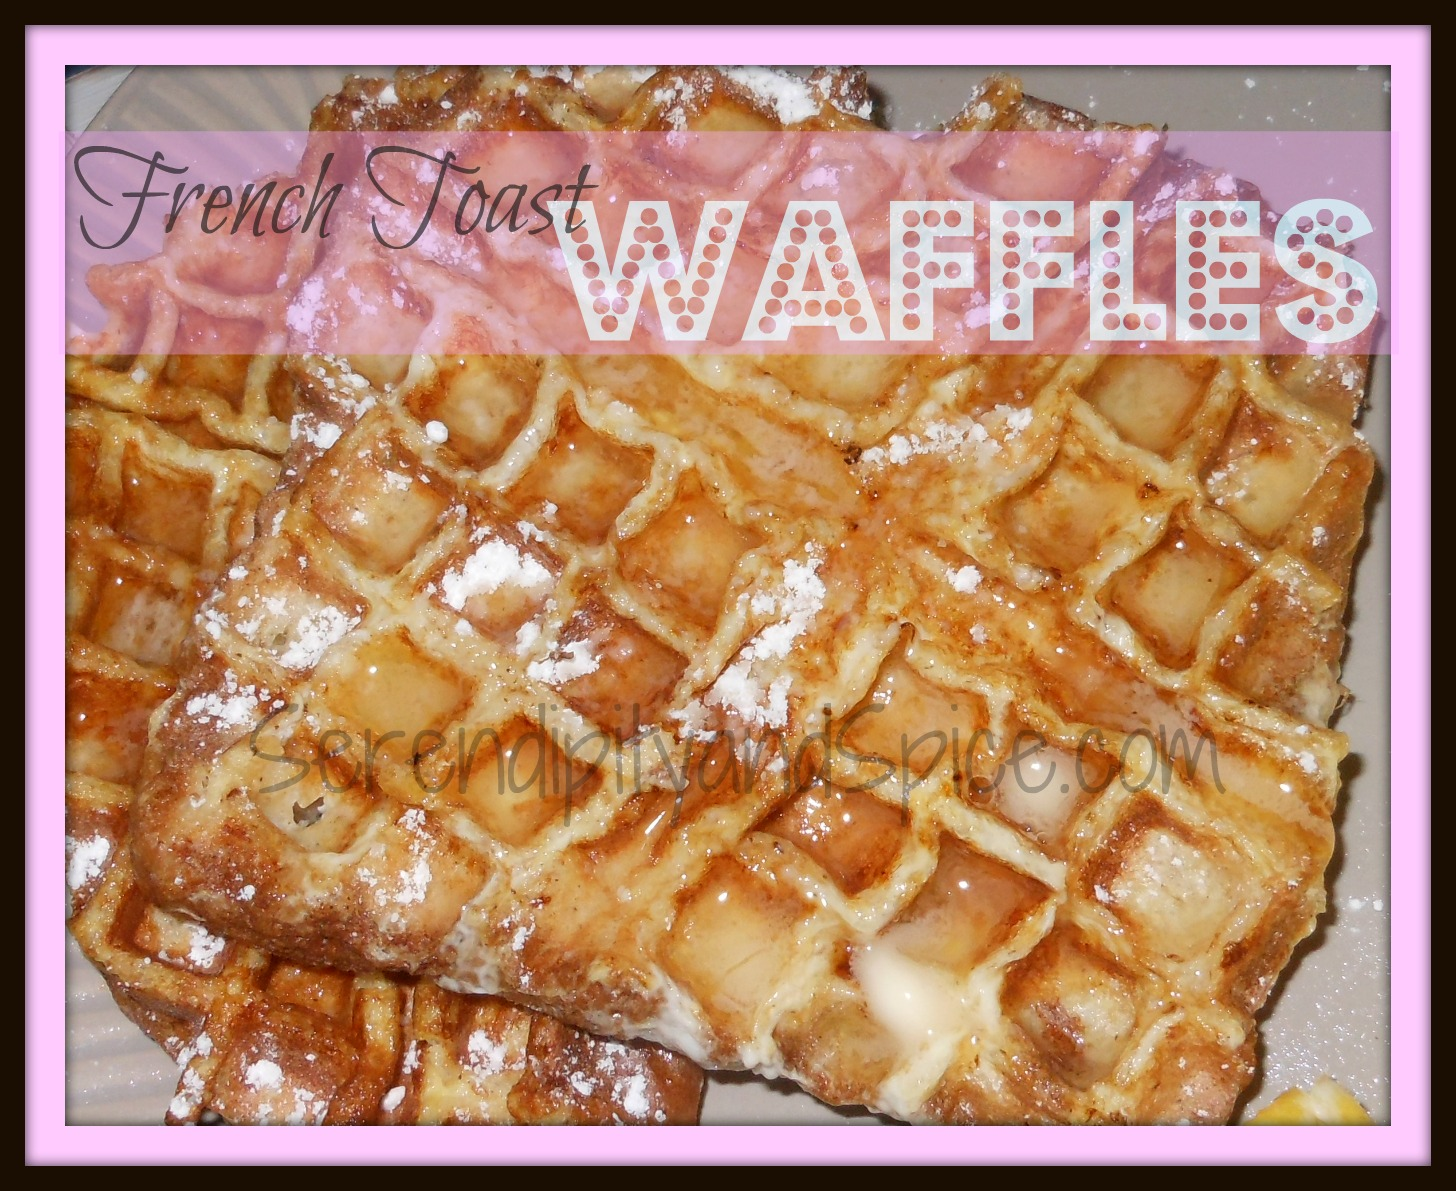 Easy Breakfast Recipes: French Toast Waffles